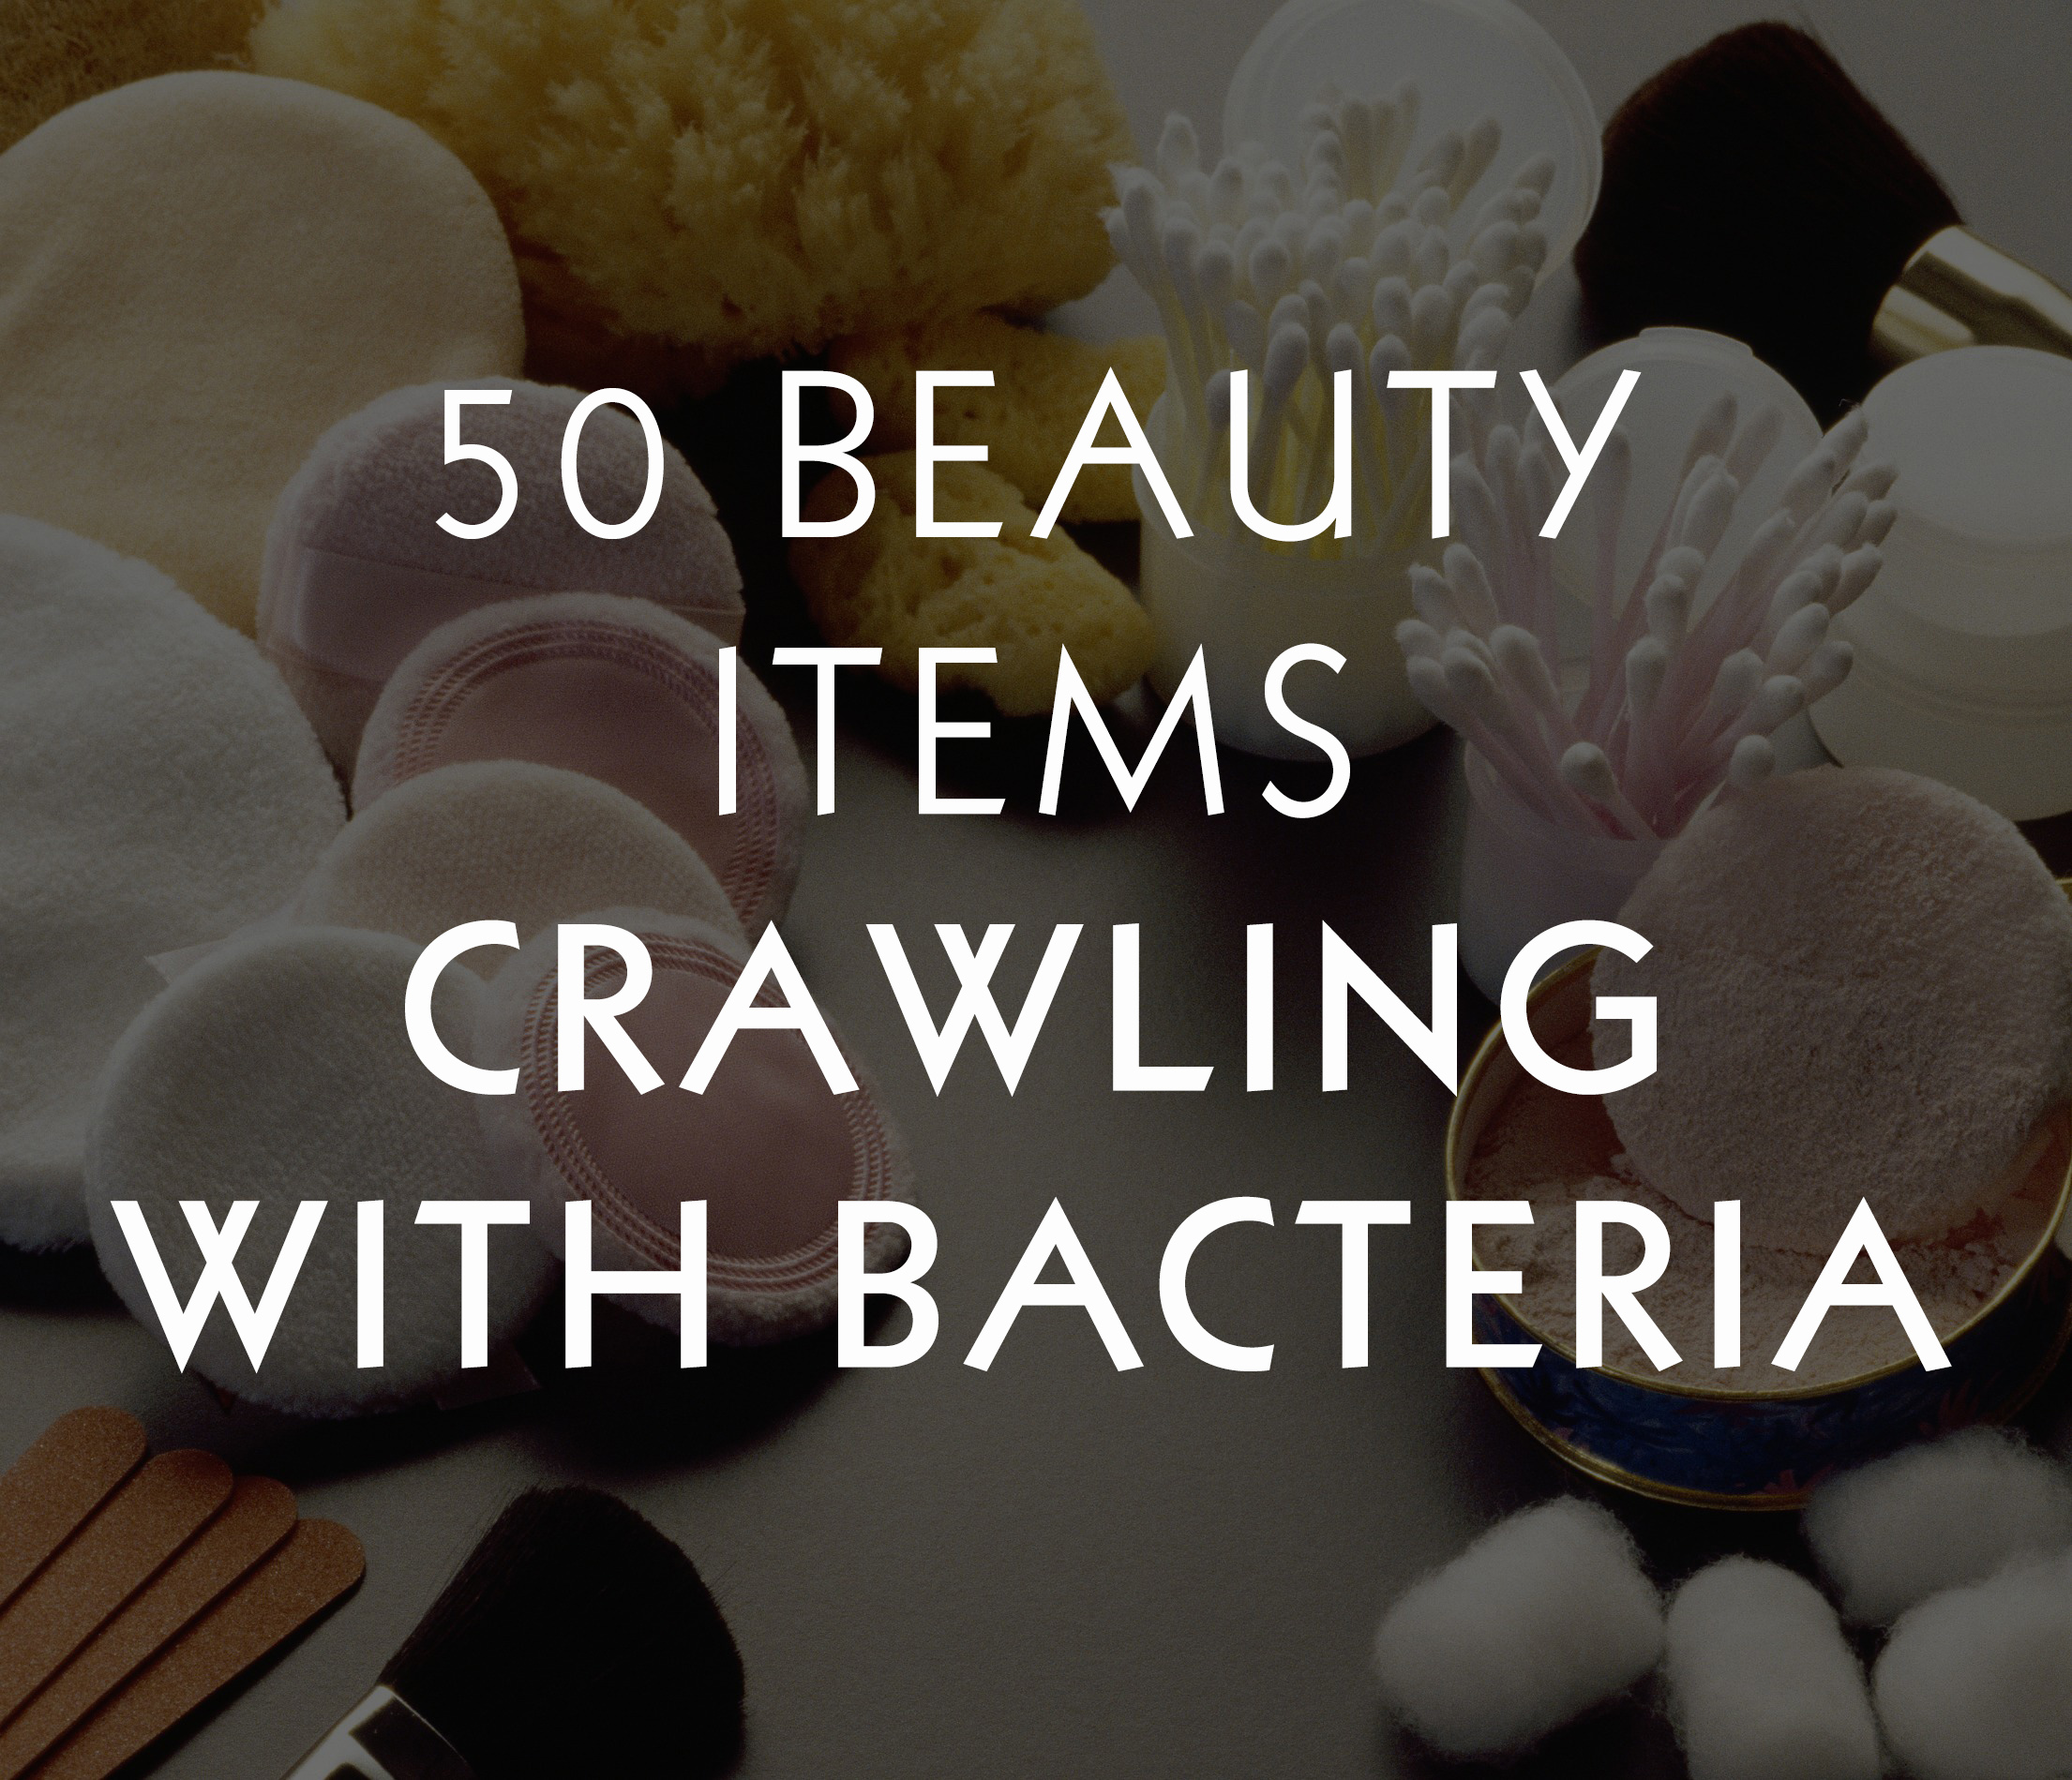 beauty items with bacteria